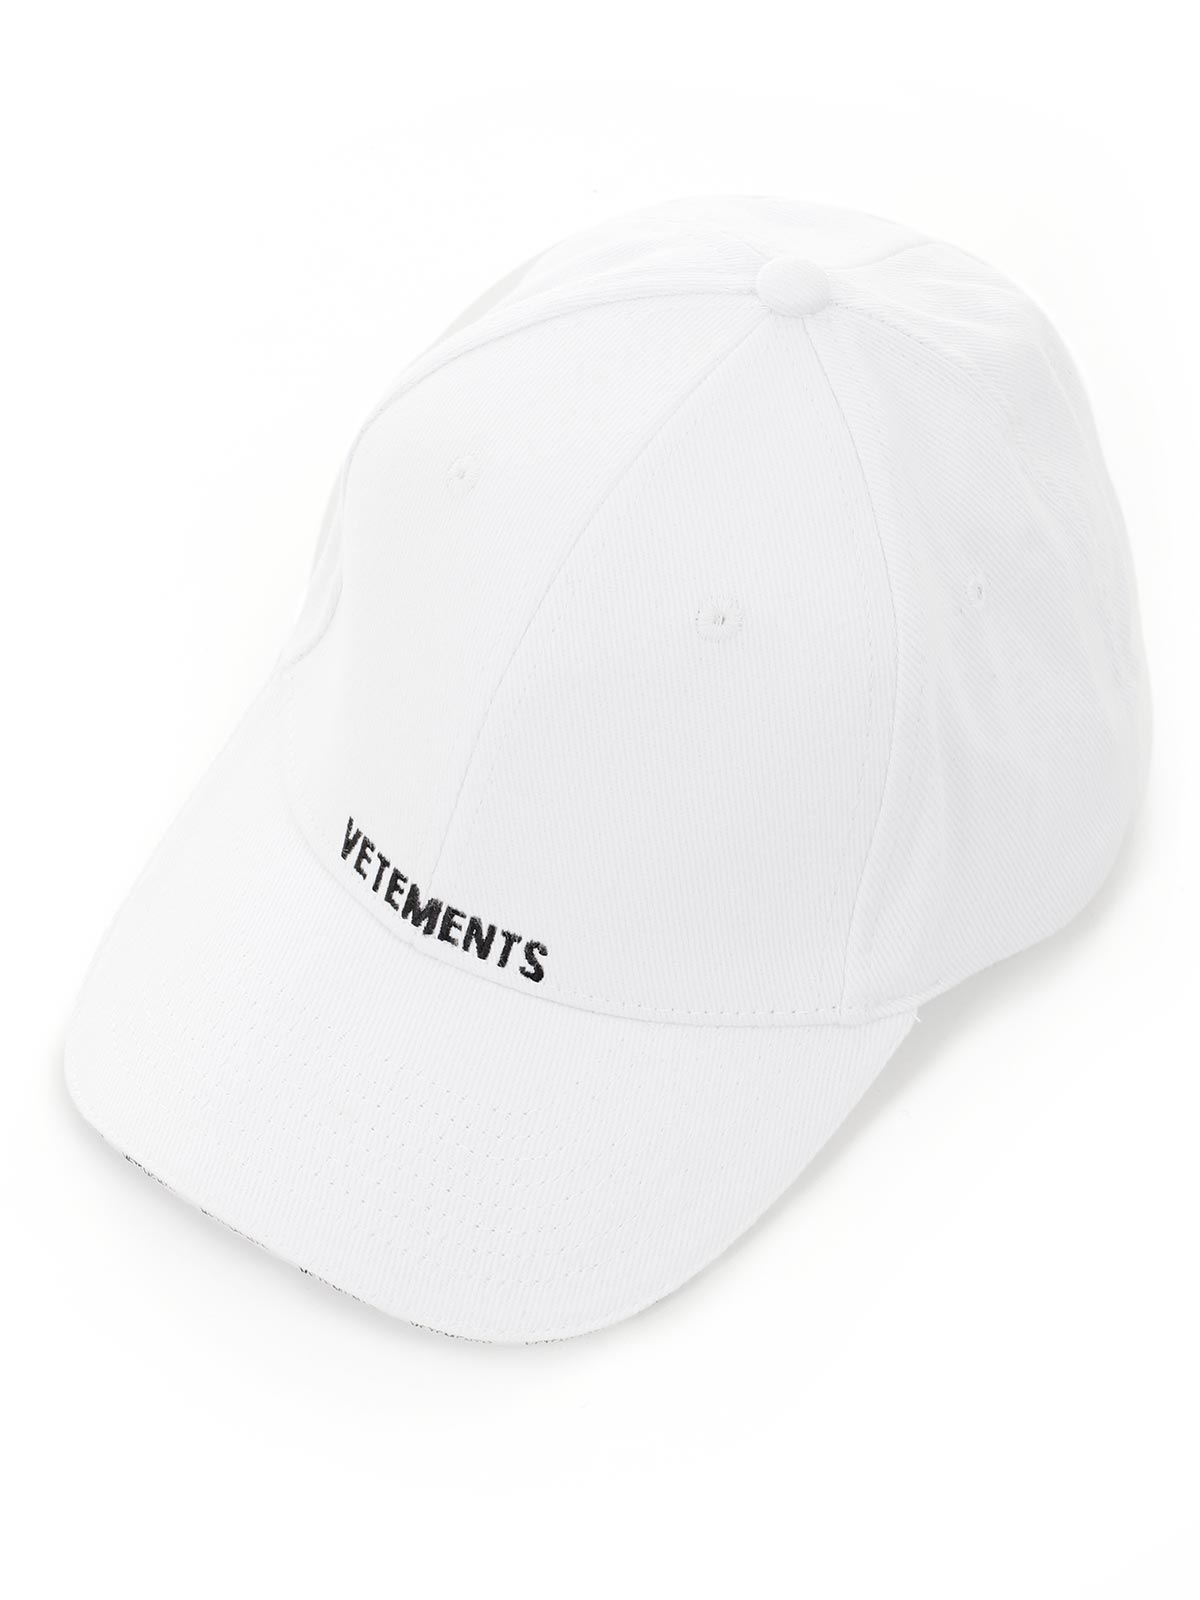 Picture of VETEMENTS HAT